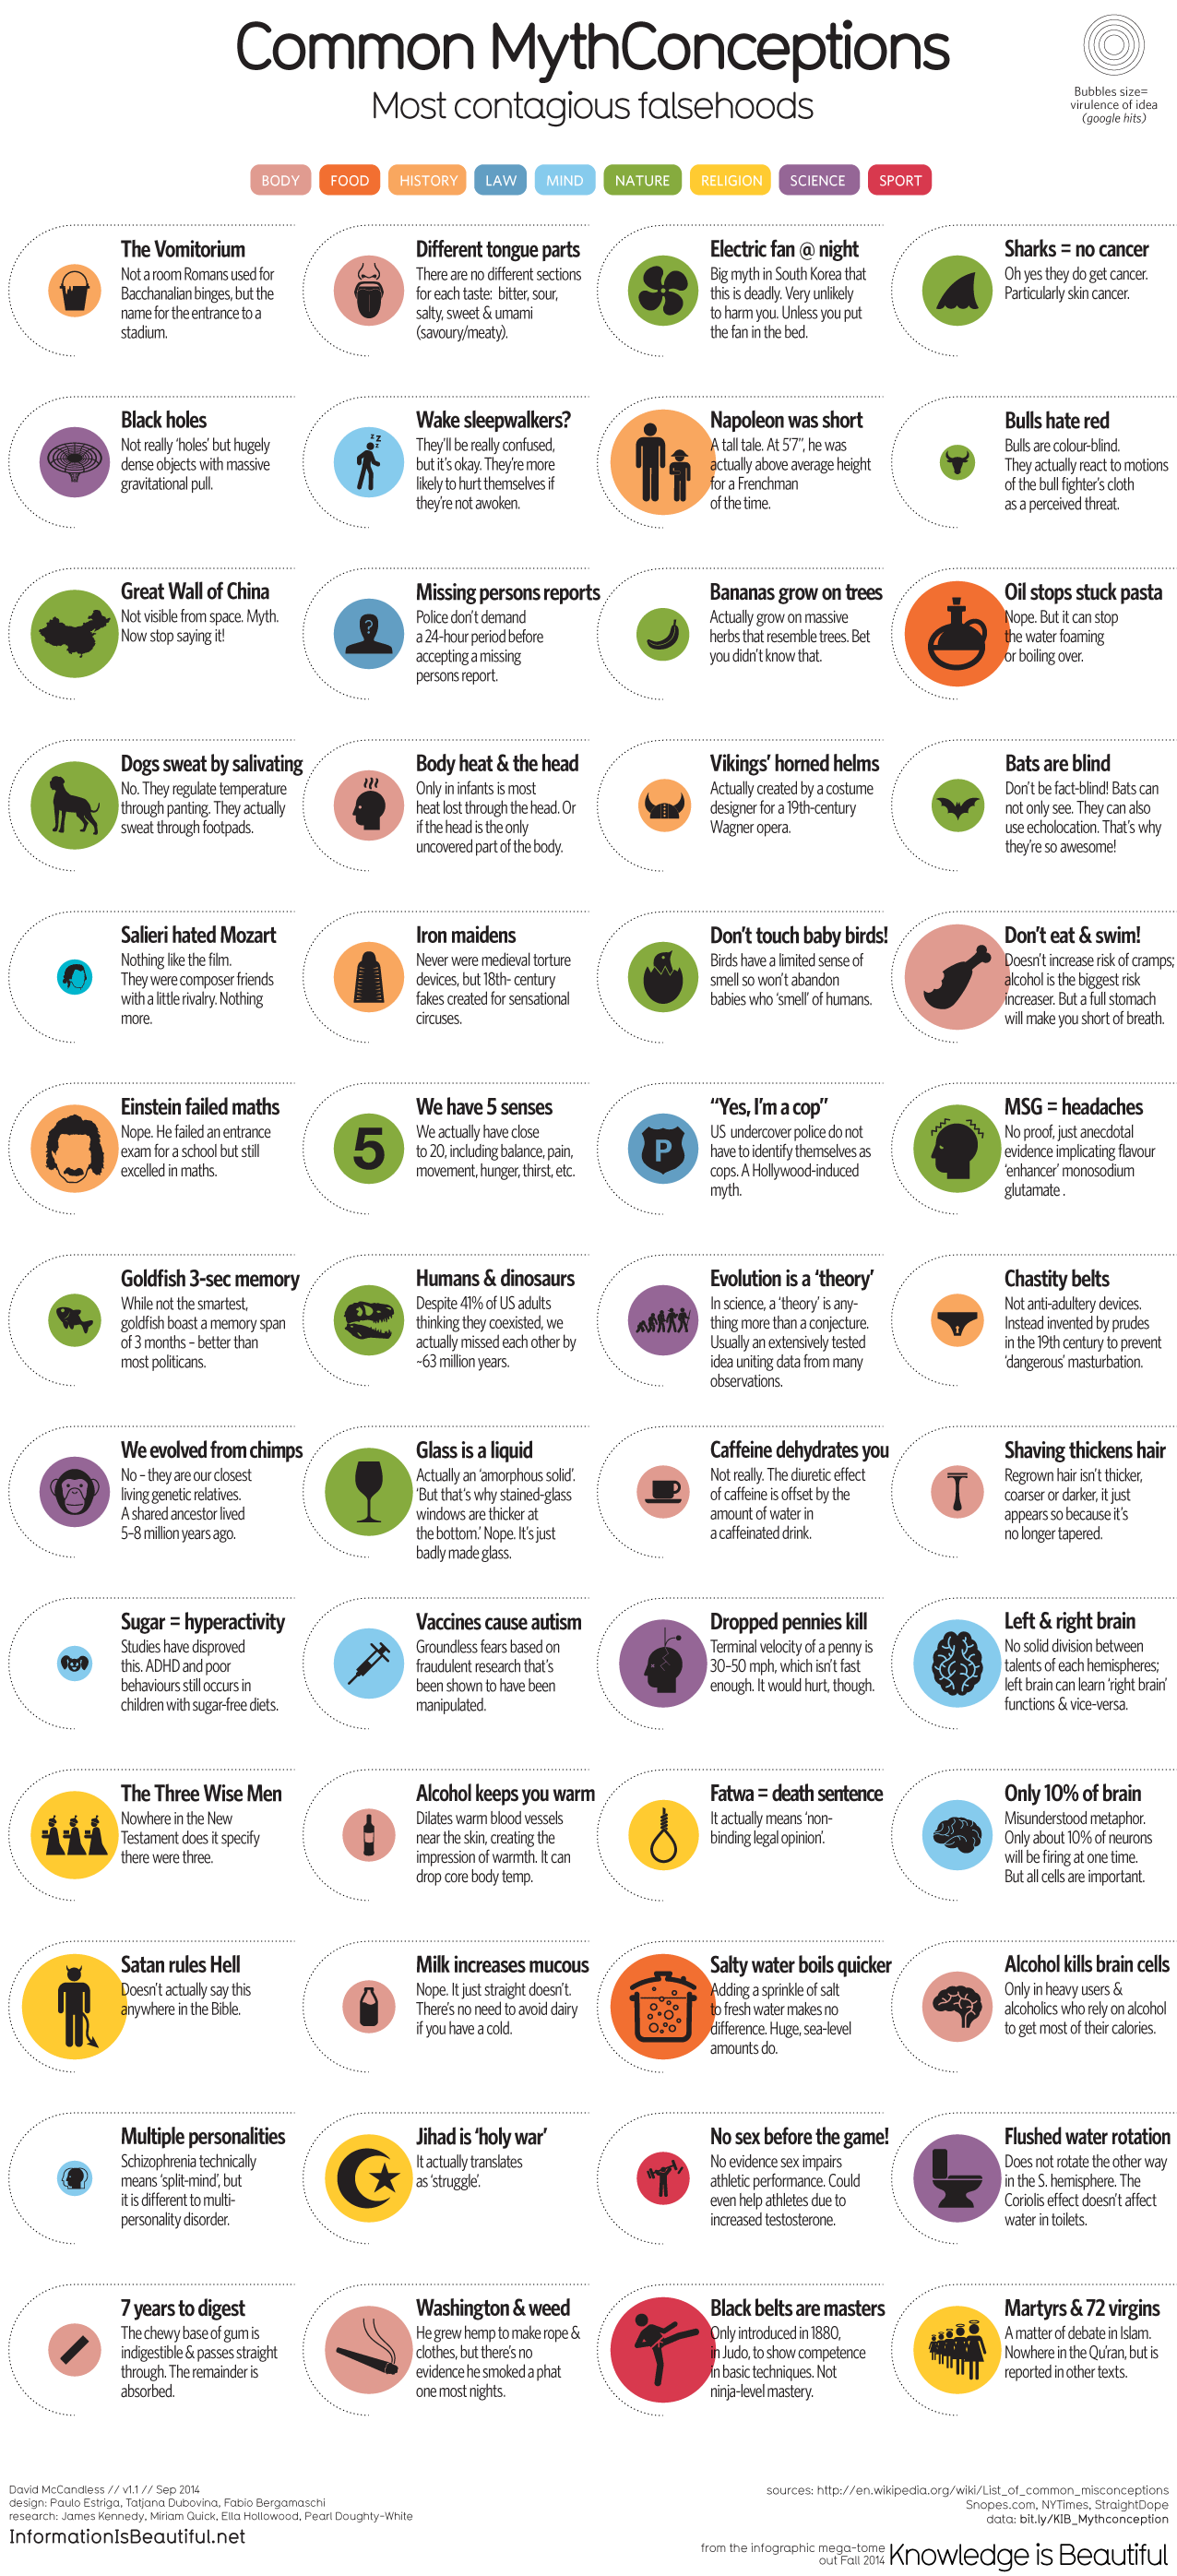 Common Mythconceptions- Information is Beautiful